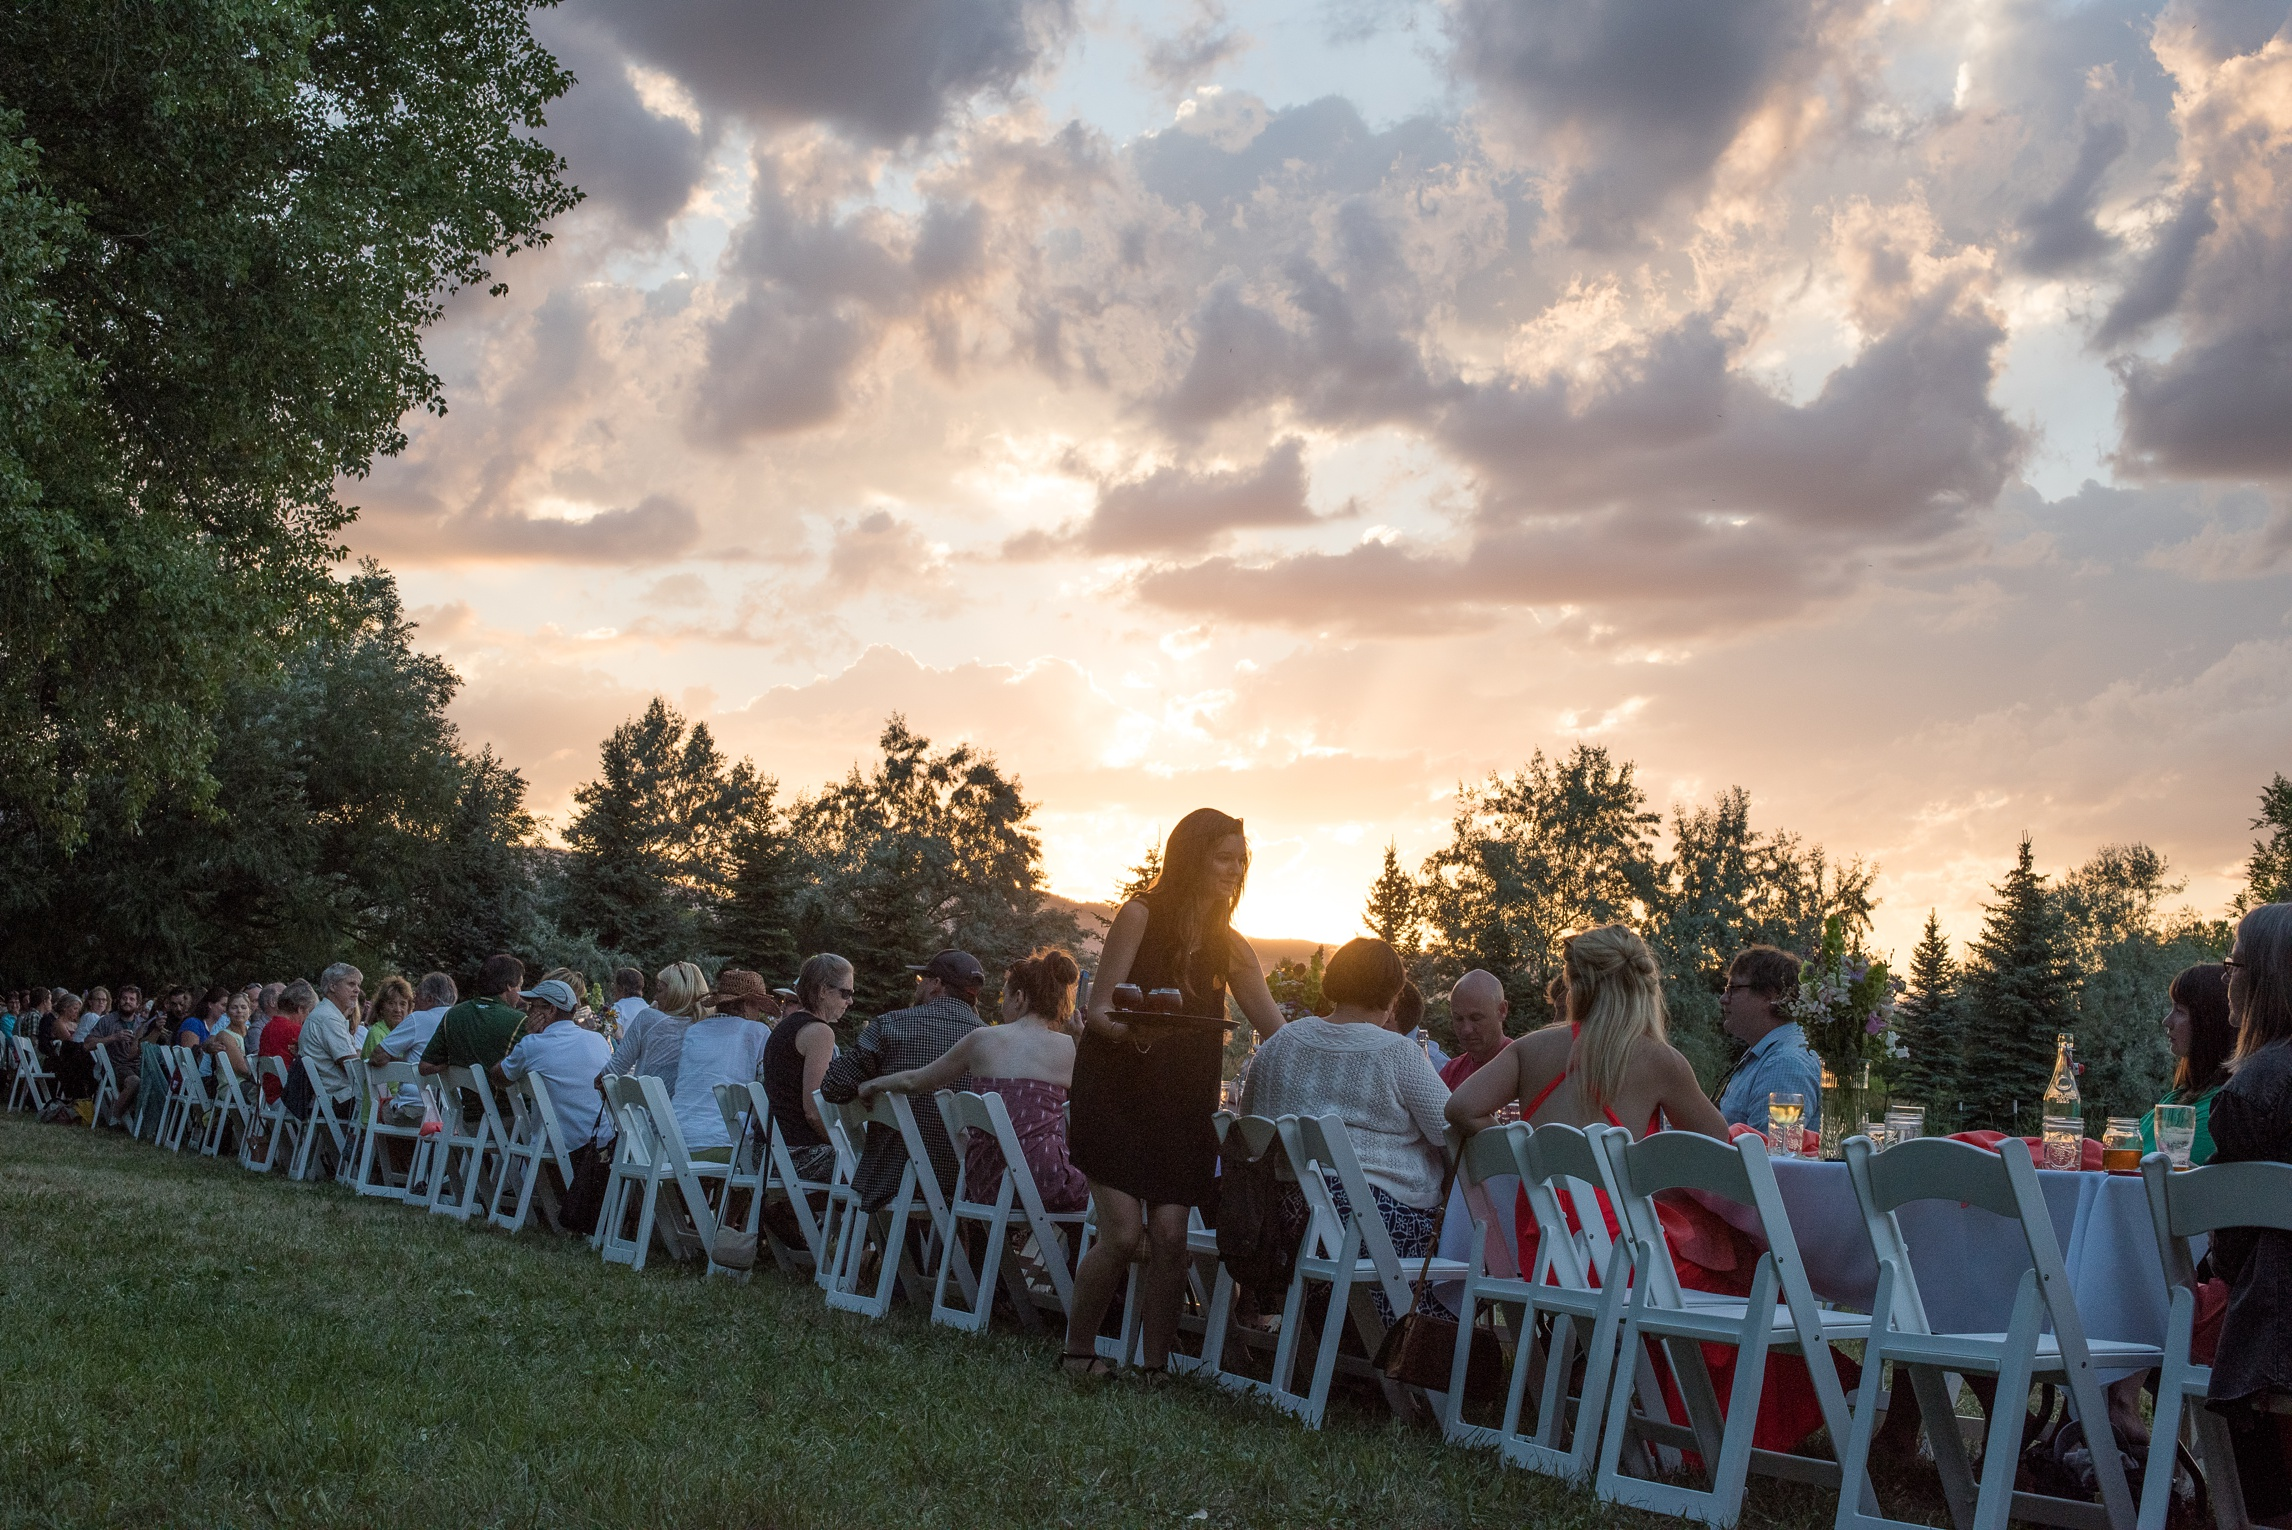 Sunset at the Fortified Collaborations Heart of Summer Farm Dinner at Happy Heart Farm in Fort Collins, Colorado. Event photography by Sonja Salzburg of Sonja K Photography.